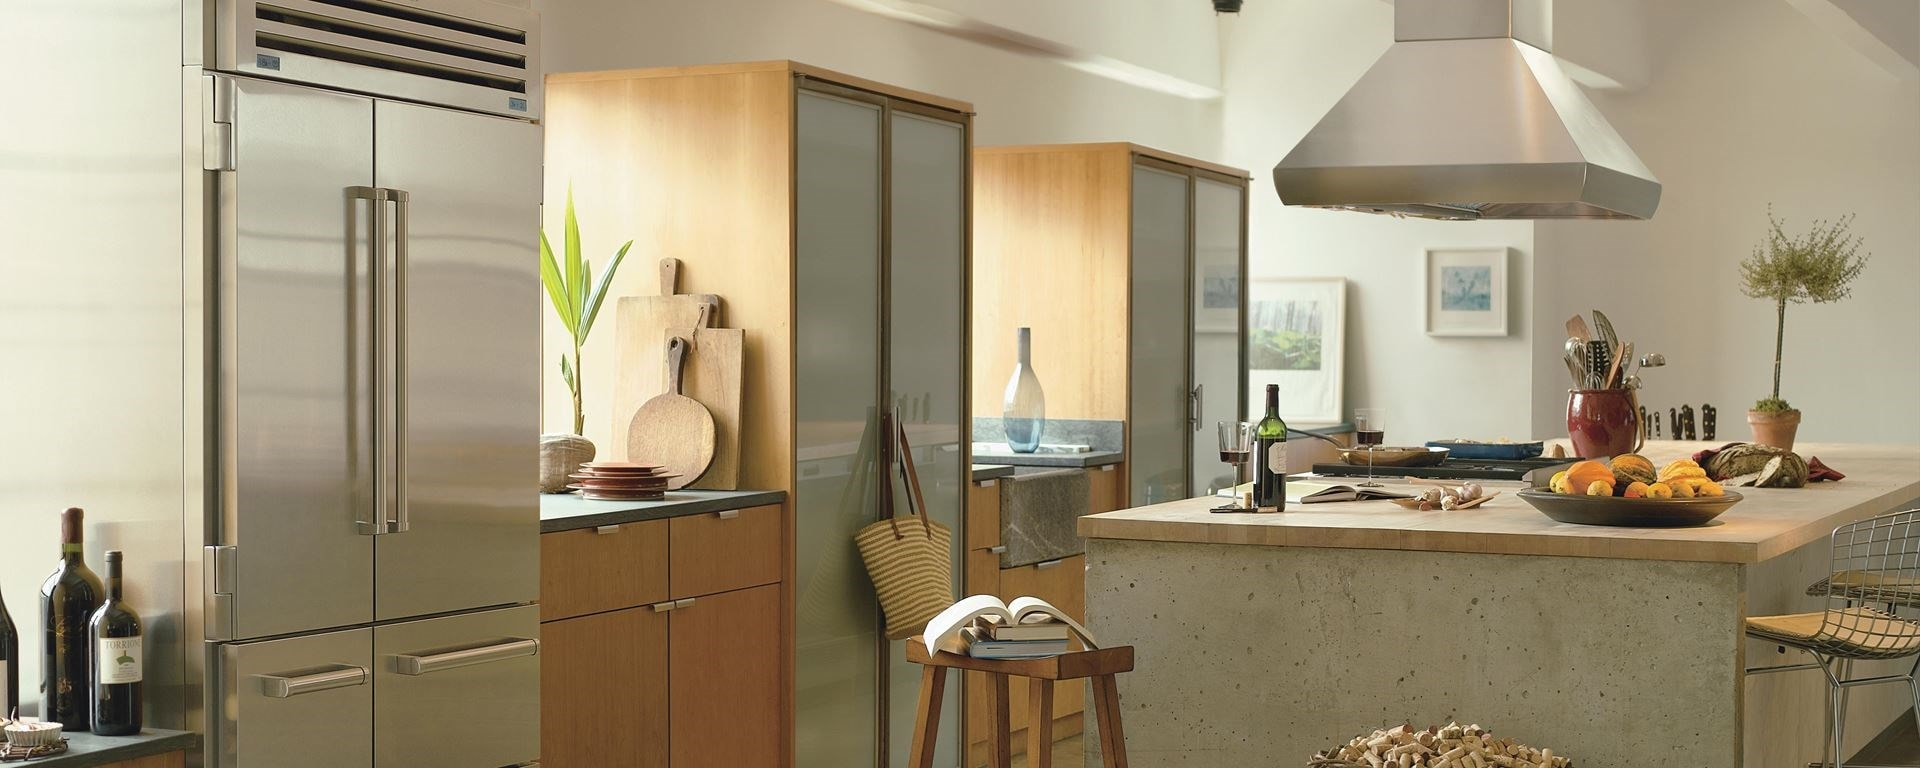 Sub-Zero Pro 48 anchoring a Sub-Zero, Wolf, and Cove kitchen design